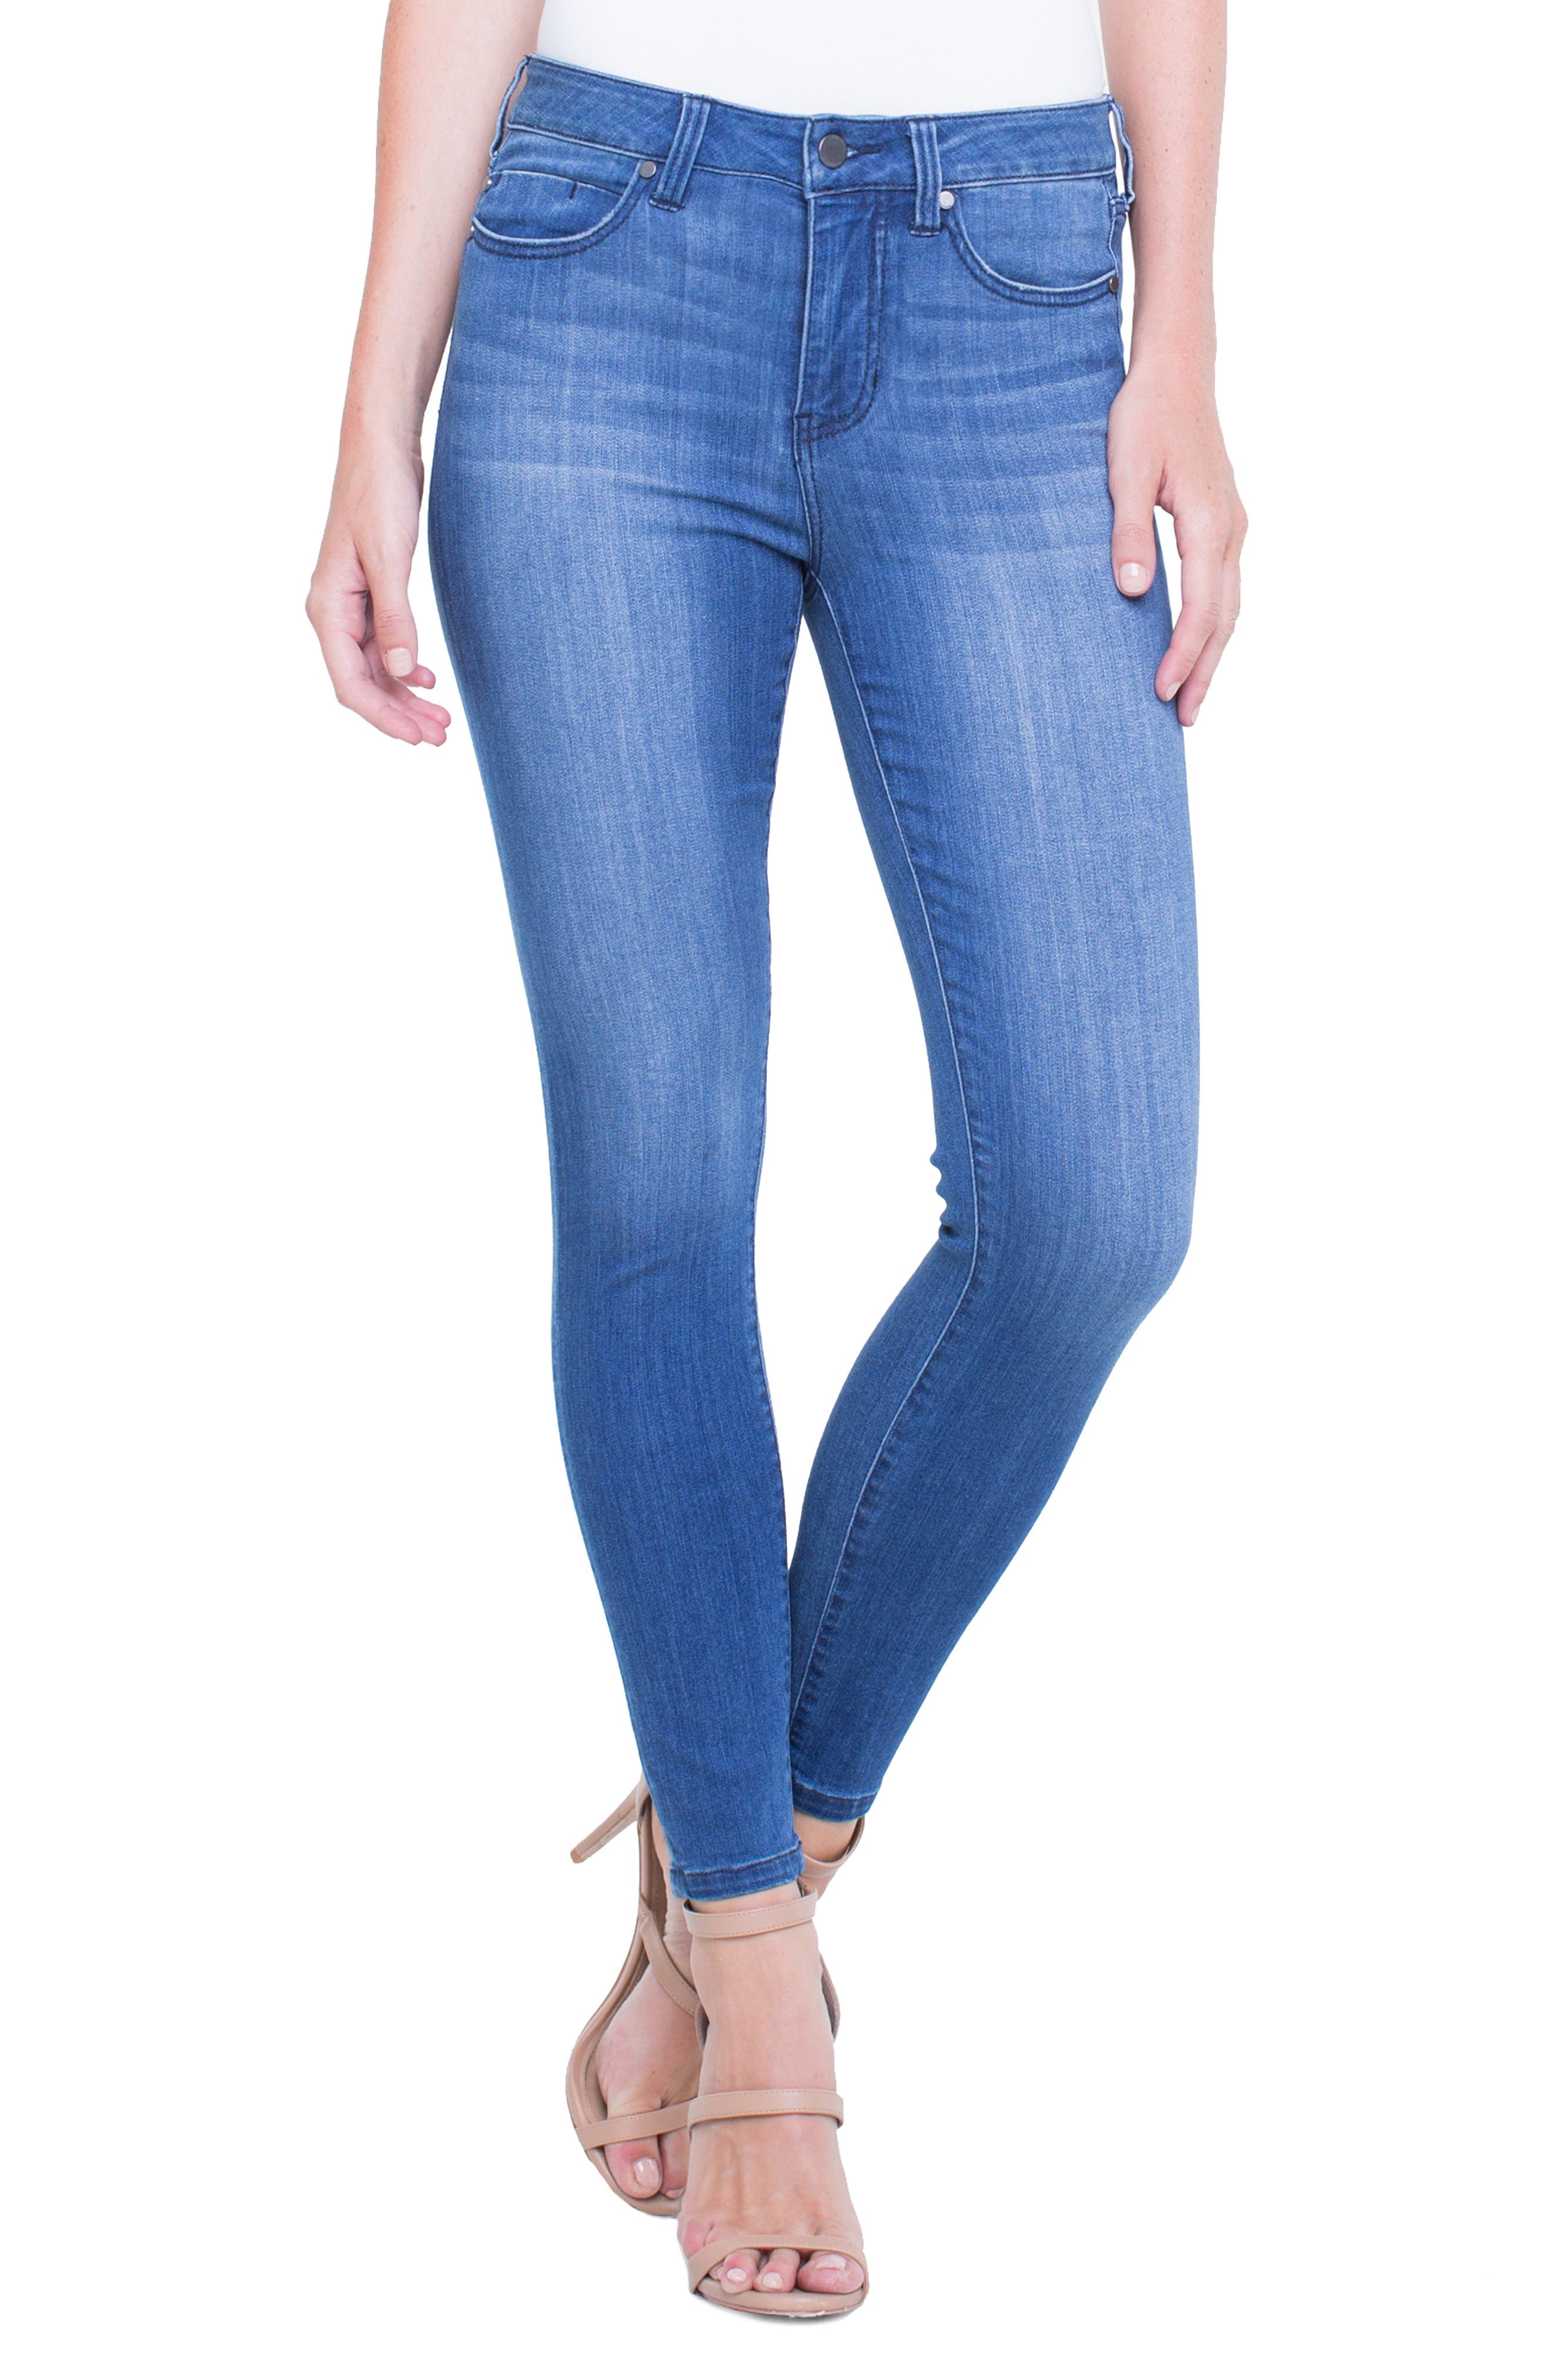 The skinnies you\\\'ll reach for on repeat are this curve-flattering pair of silky-soft denim with just the right amount of stretch. Style Name: Liverpool Abby Ankle Skinny Jeans. Style Number: 5931428. Available in stores.